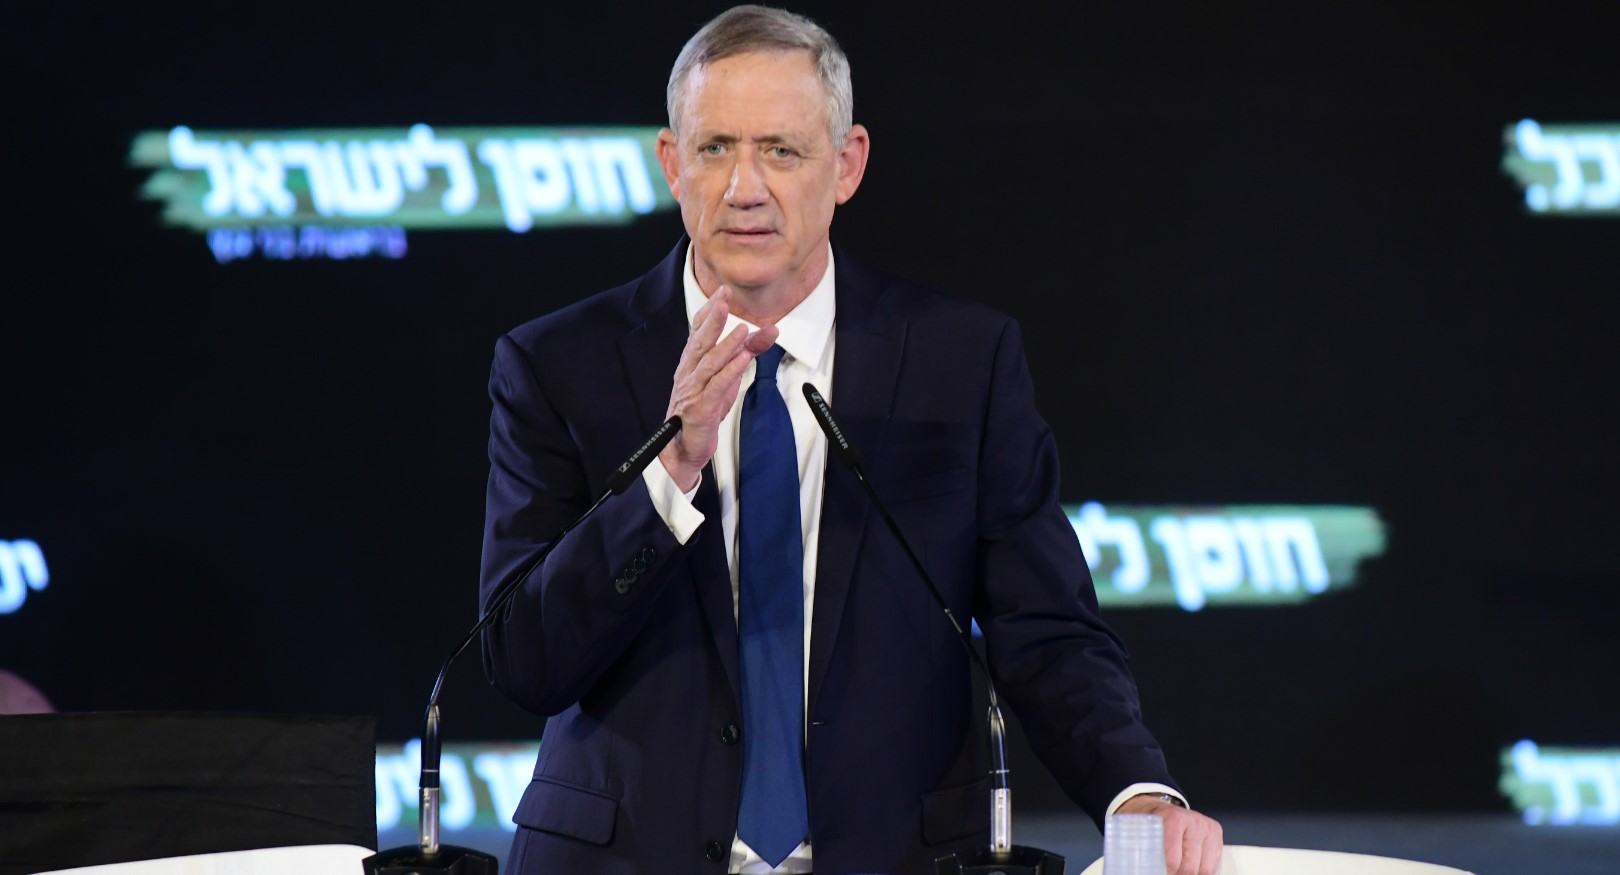 """Israel's Gantz said date for West Bank annexation talks """"not sacred"""" -party source"""